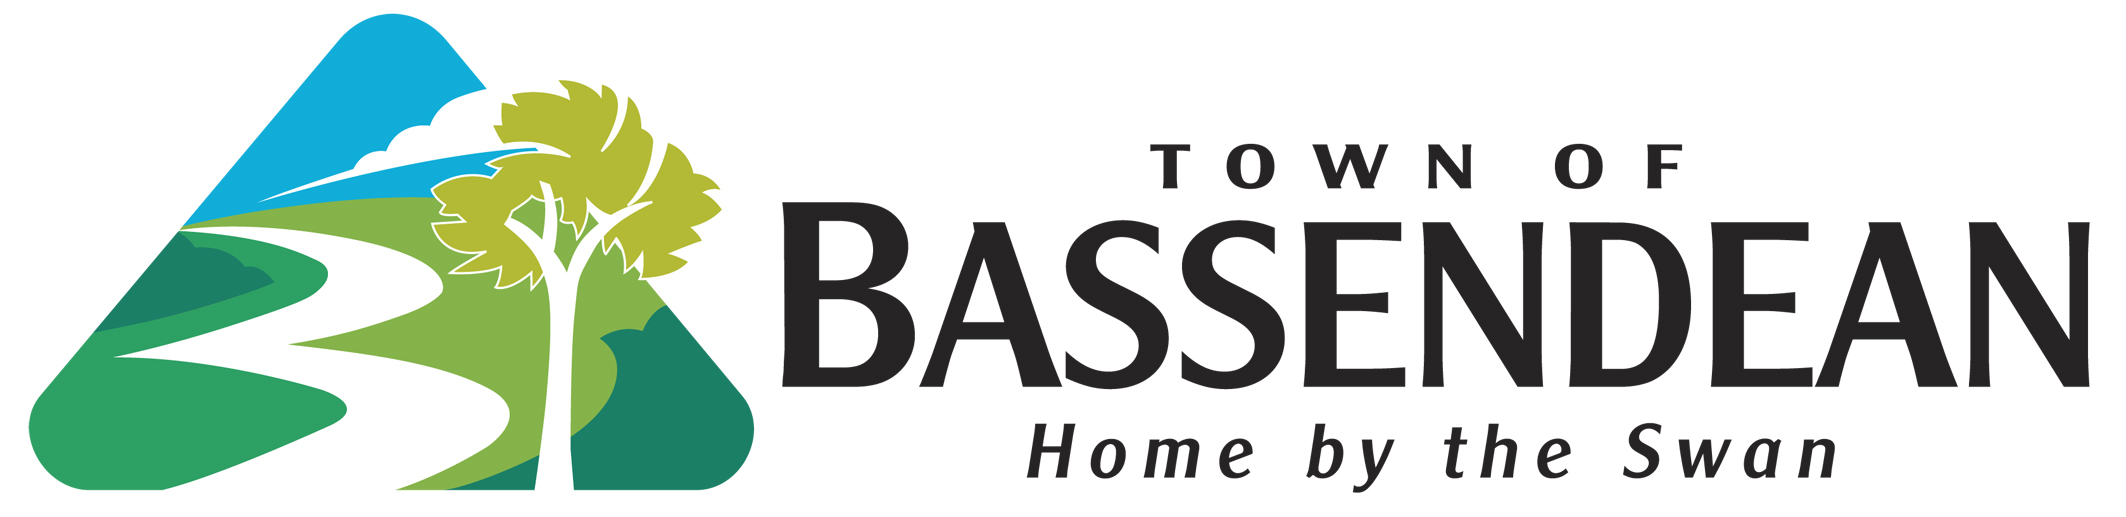 City of bassendean